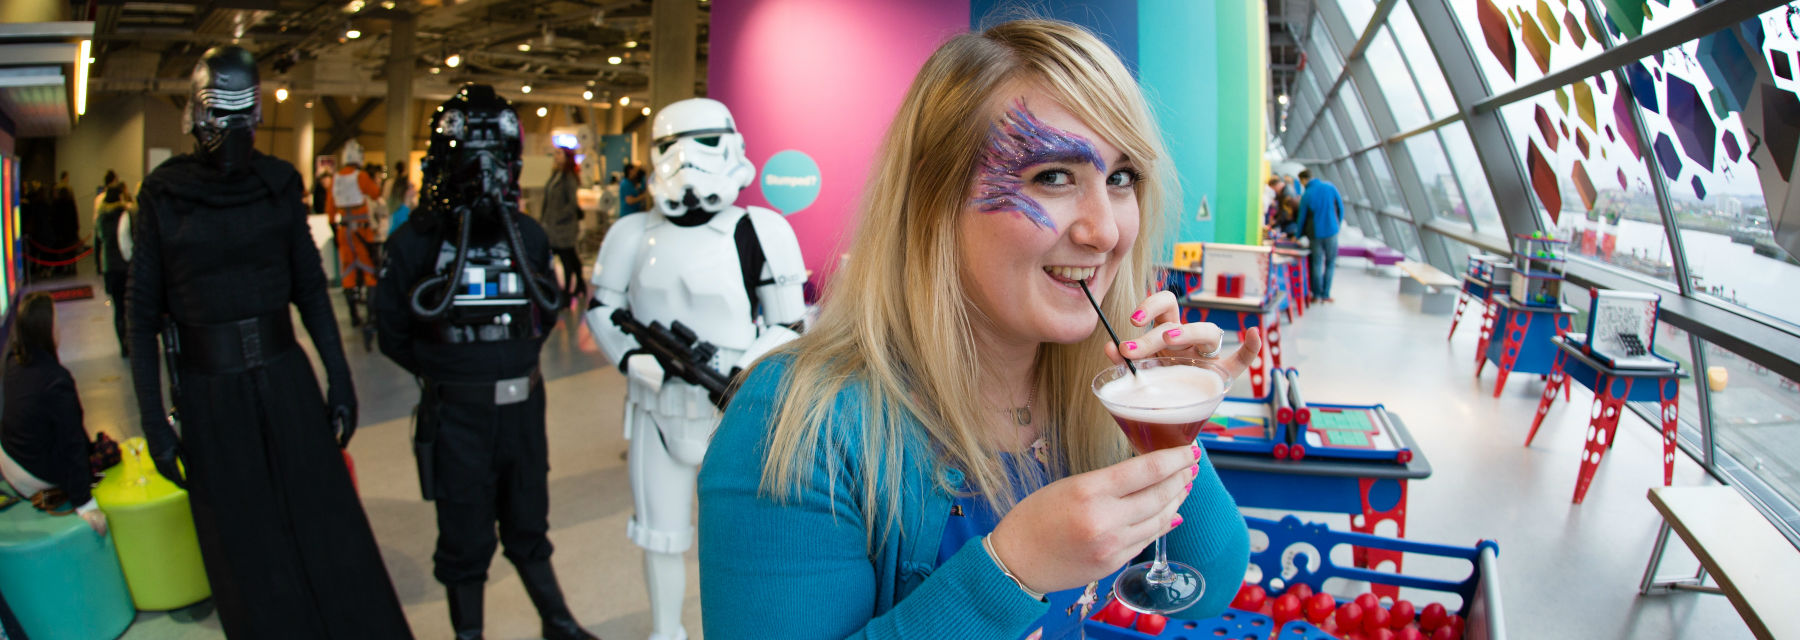 A woman drinking a cocktail amongst the science centre exhibits, with characters from Star Wars behind her